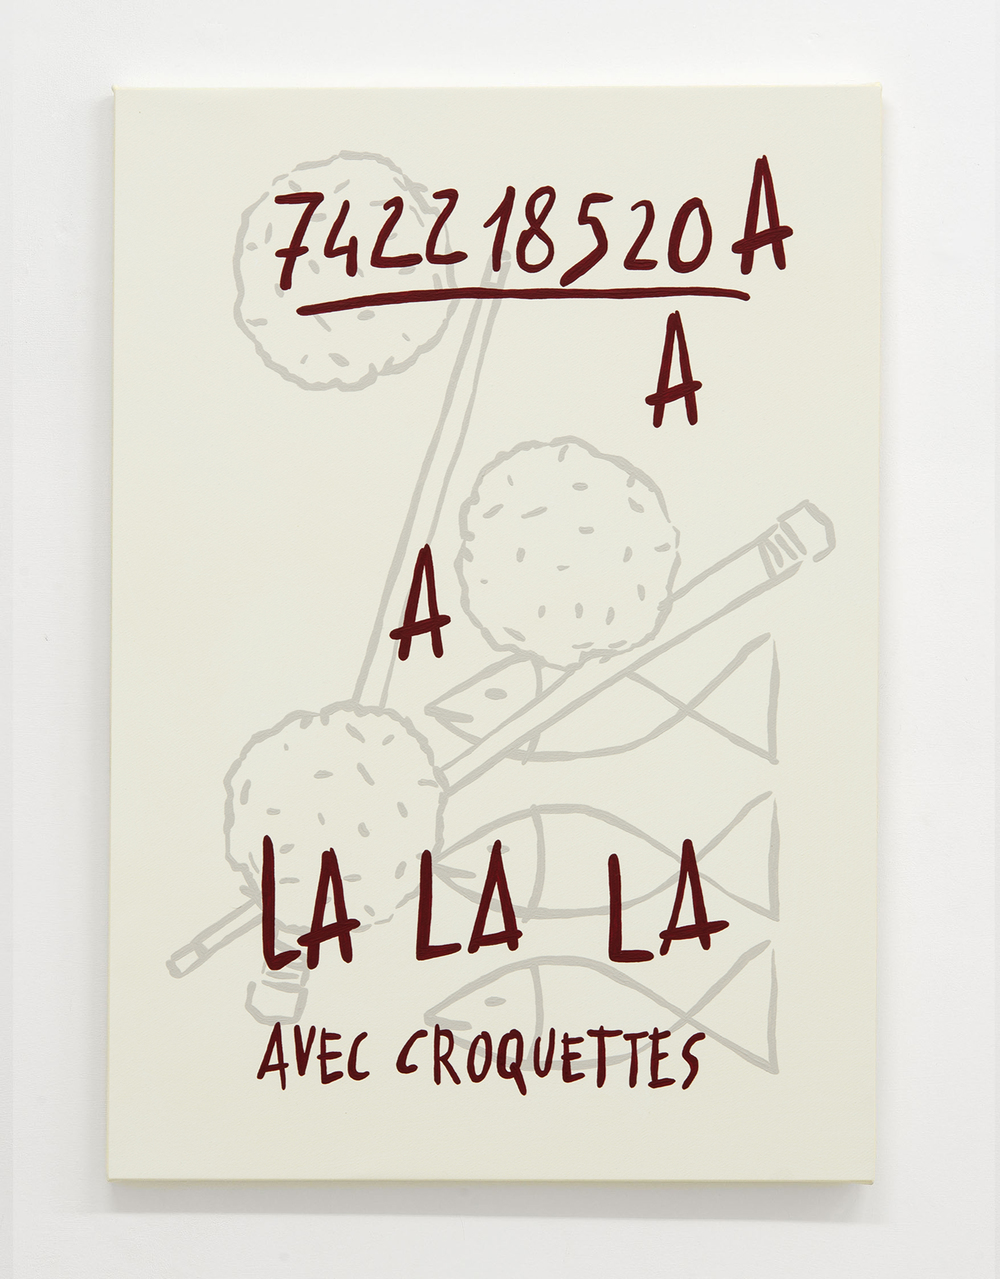 """742218520 A A A LaLaLa Avec Croquettes"", 2016, Acrylic on canvas, cm 68x50 – Photo Pavel Curagău"